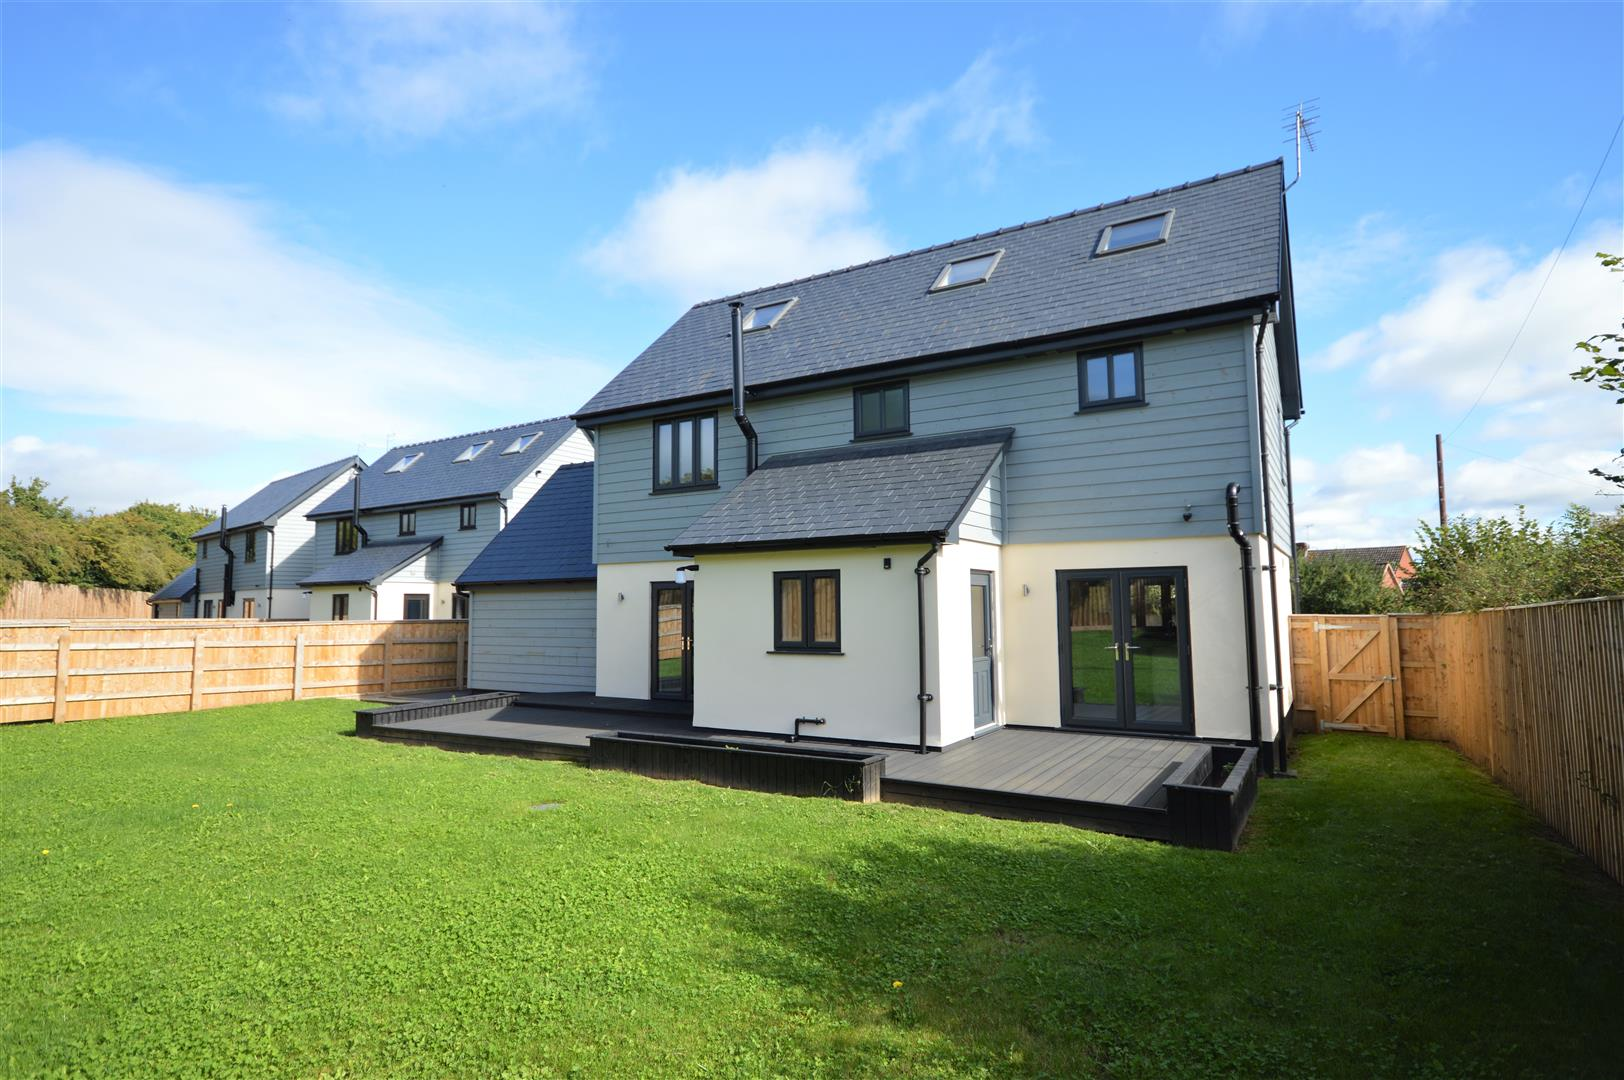 4 bed detached for sale in Brimfield 19